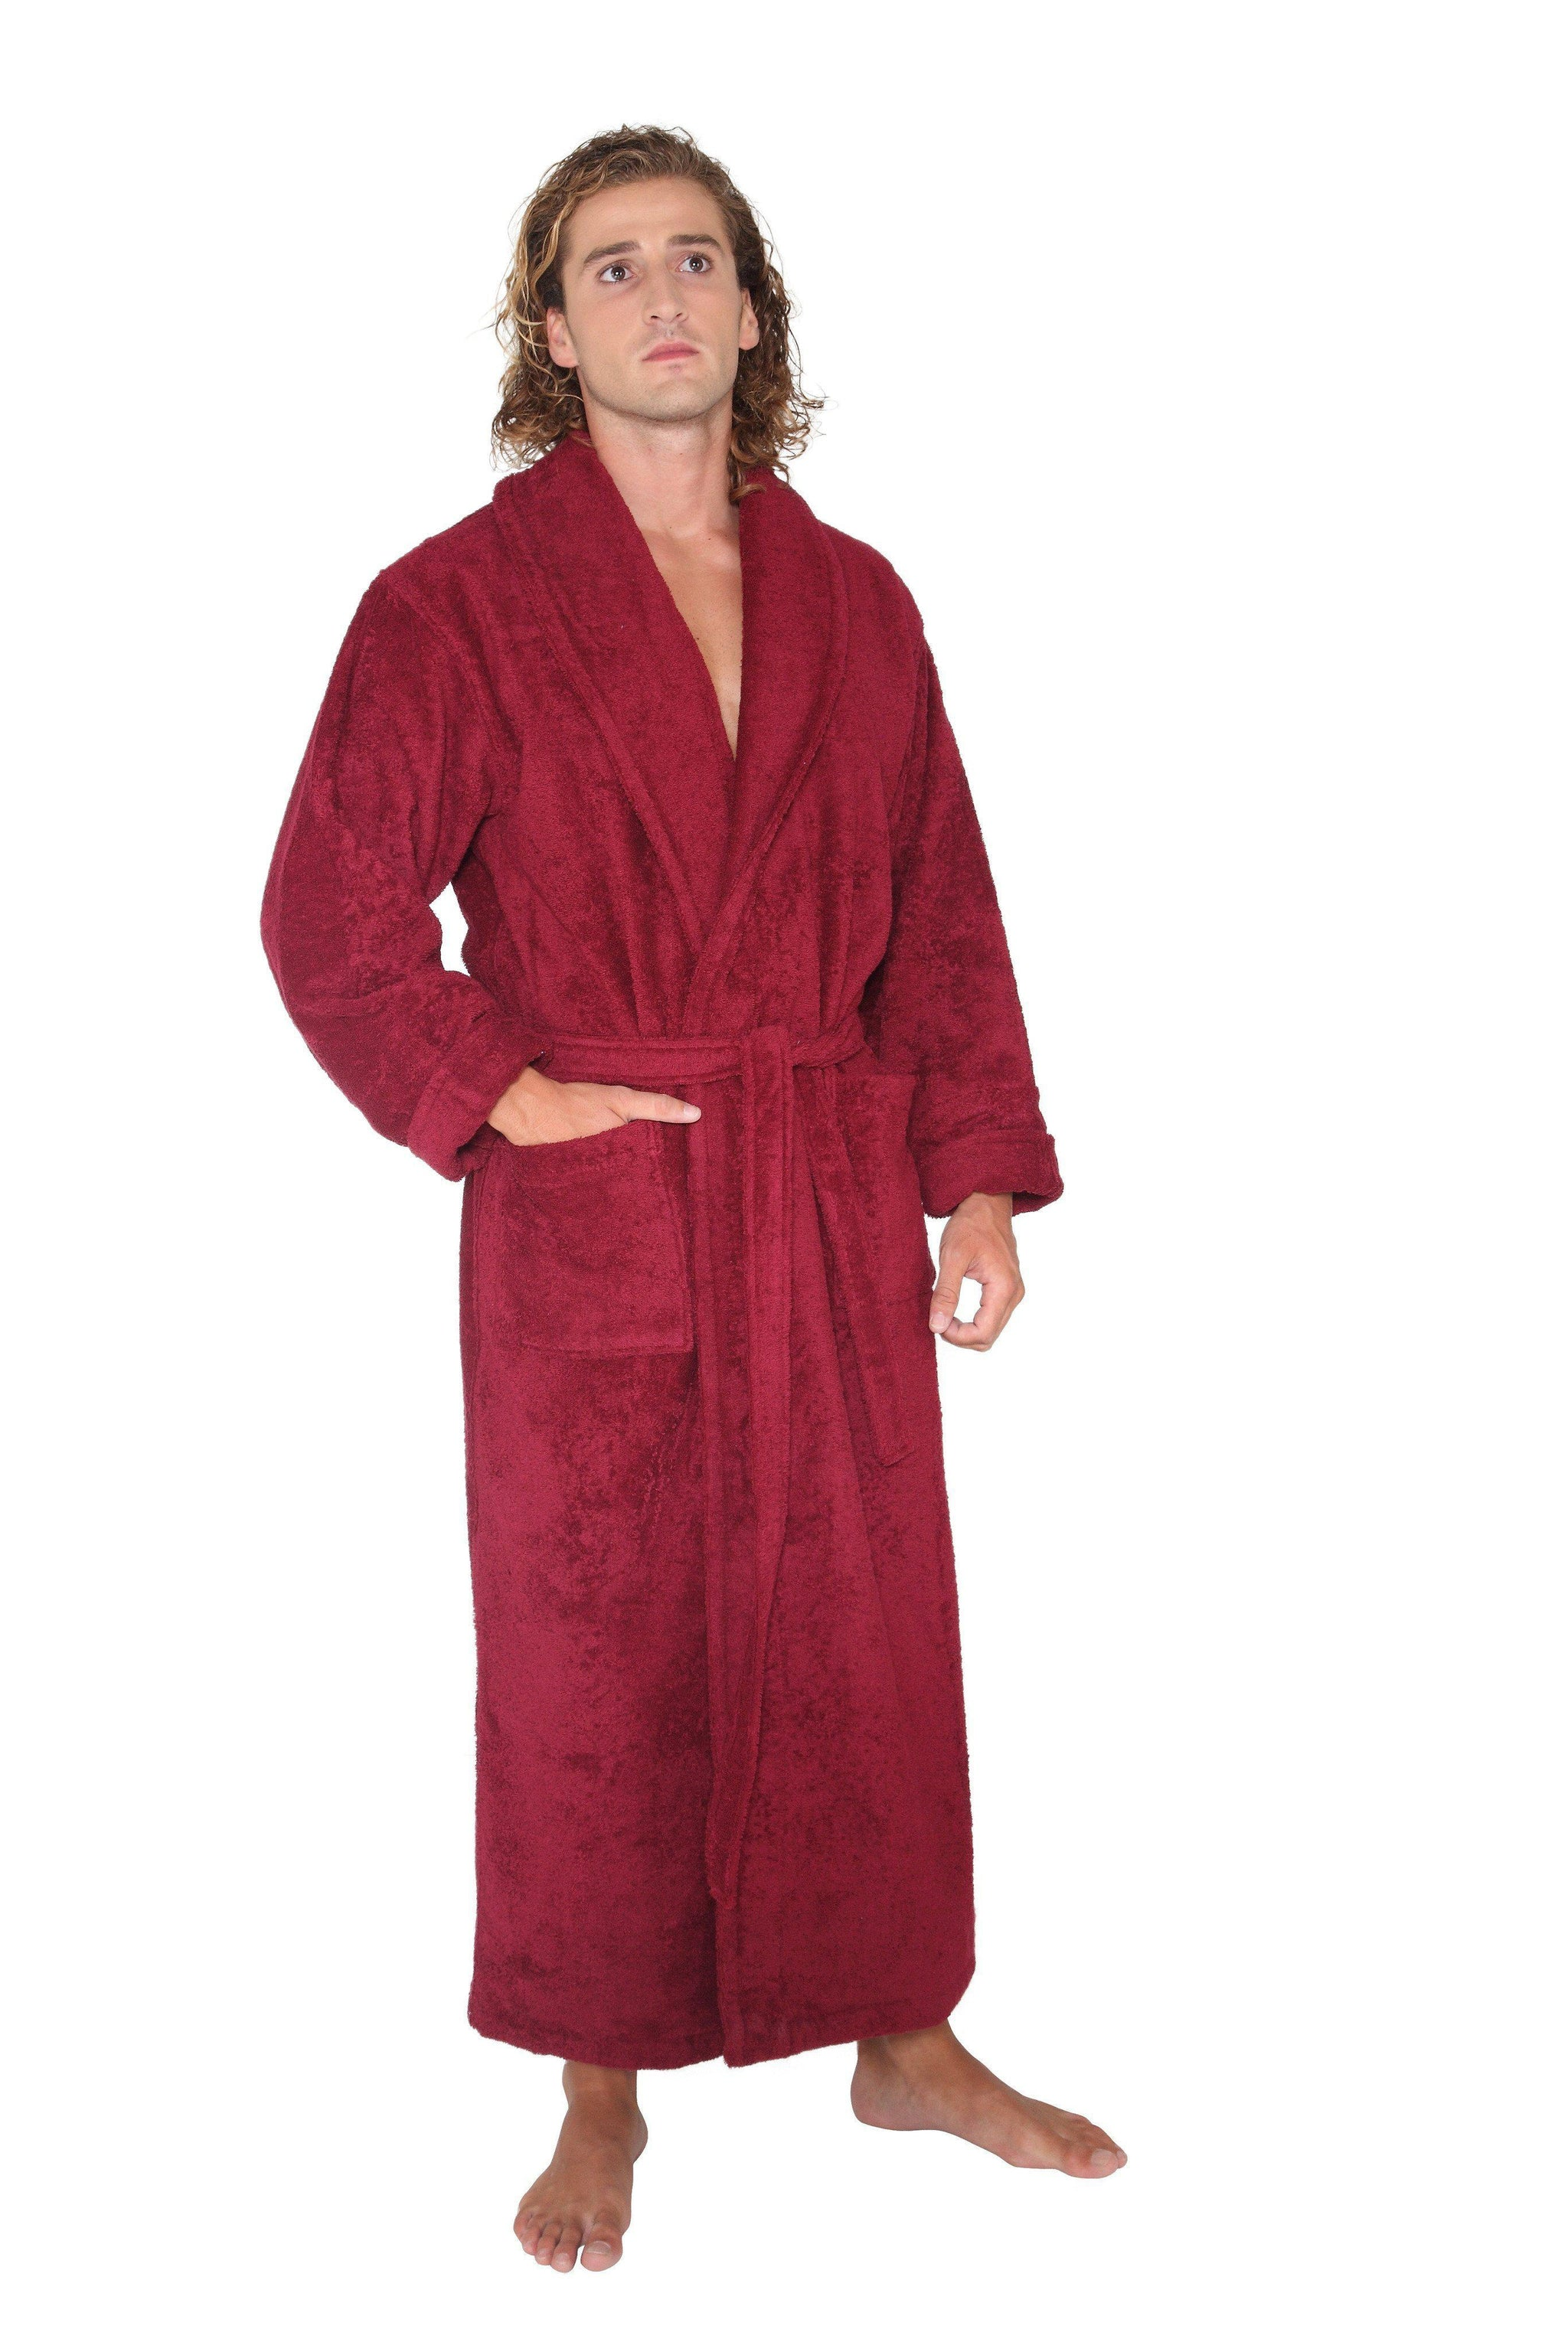 Men's Turkish Terrycloth Full Length Bathrobe-Bathrobe-ARUS-Top Notch Gift Shop